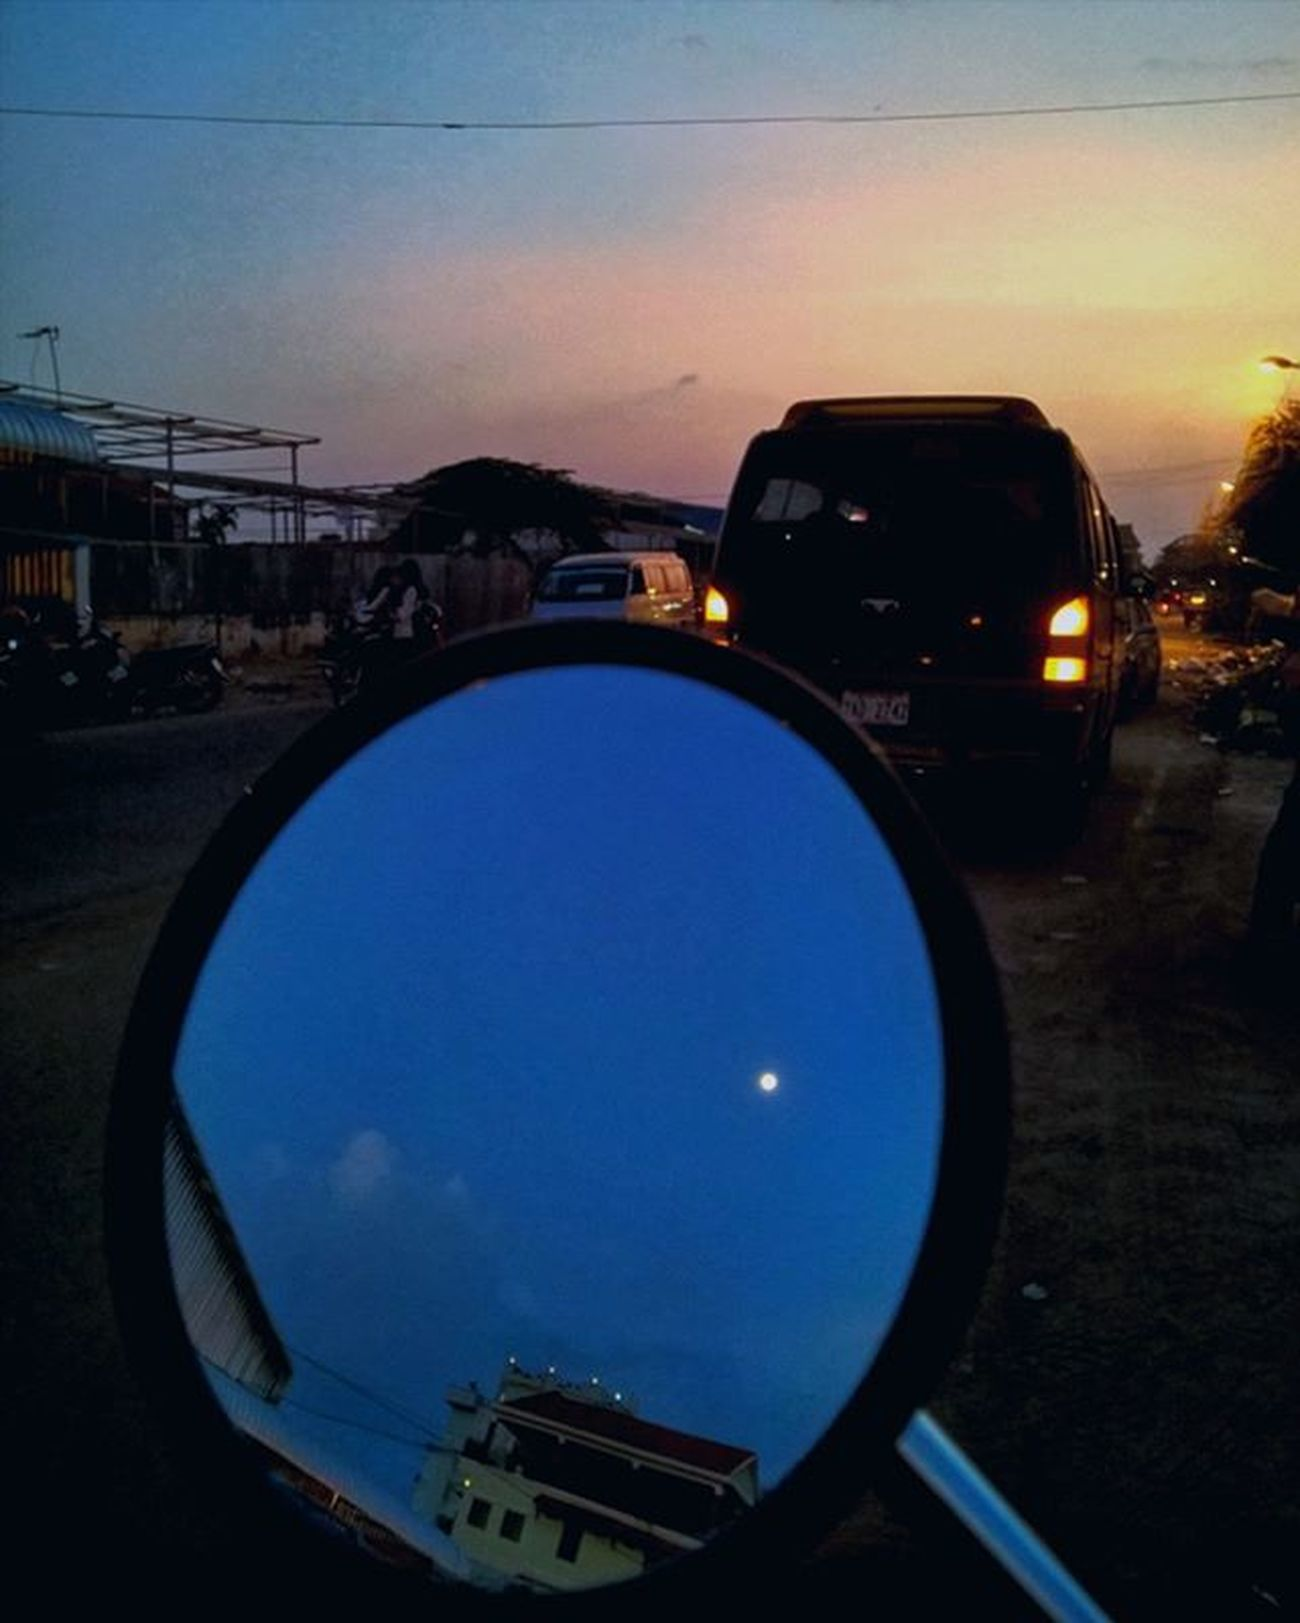 Sunset in the front and refection of the moon in the back. Lumia930 Mobilephotography WindowsPhonePhotography WeLoveLumia ShotOnMyLumia  Lumiaography Theappwhisperer Makemoments MoreLumiaLove GoodRadShot TheLumians Fhotoroom Lumia PicHitMe EyeEm Eyewm_o MenchFeature Photography Nban NbanFamily Pixelpanda Cambodia Phnompenh @fhotoroom_ @thelumians @lumiavoices @pichitme @windowsphonephotography @microsoftwindowsphone @microsoftlumiaphotography @mobile_photography @moment_lens @goodradshot @mobilephotoblog @street_hunters @lumia @pixel_panda_ @eyeem_o @photocrowd @photoadvices @nothingbutanokia @nothinbutanokia